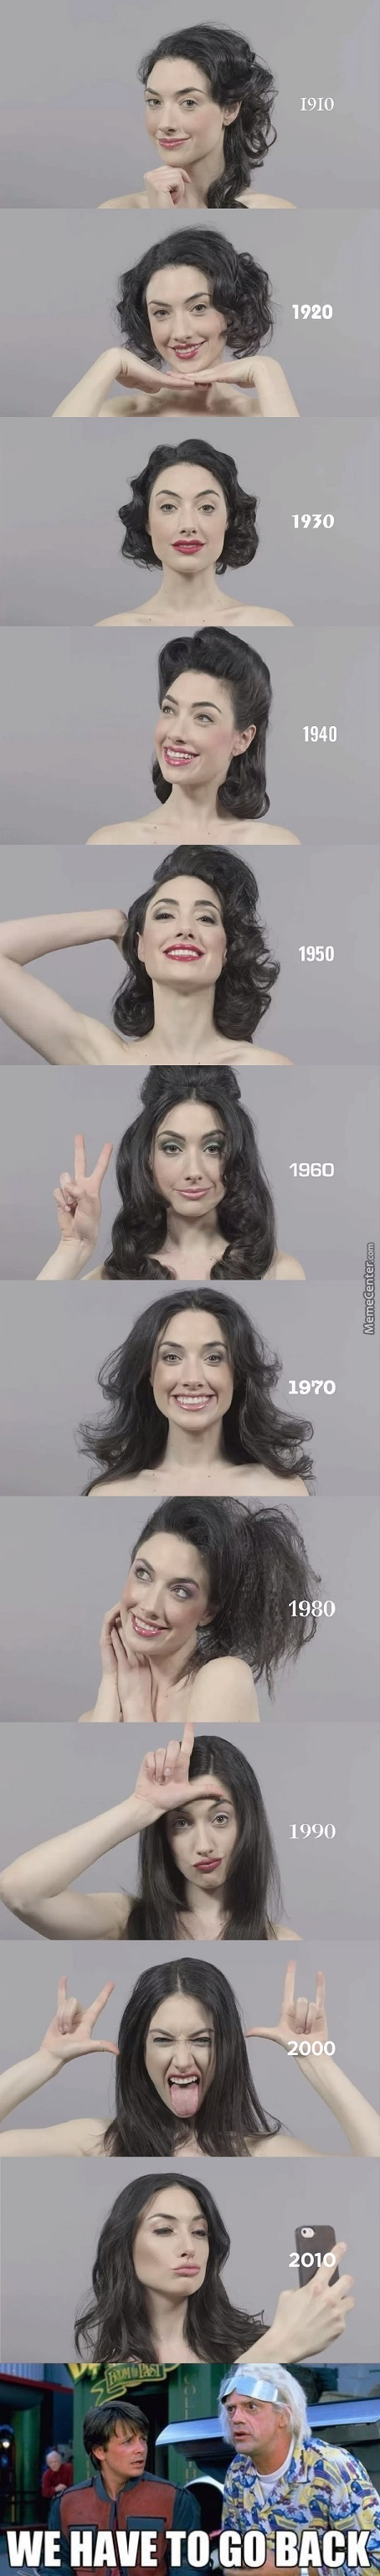 100 Years Of Beauty (I Think I'm In Love With 40's Look)